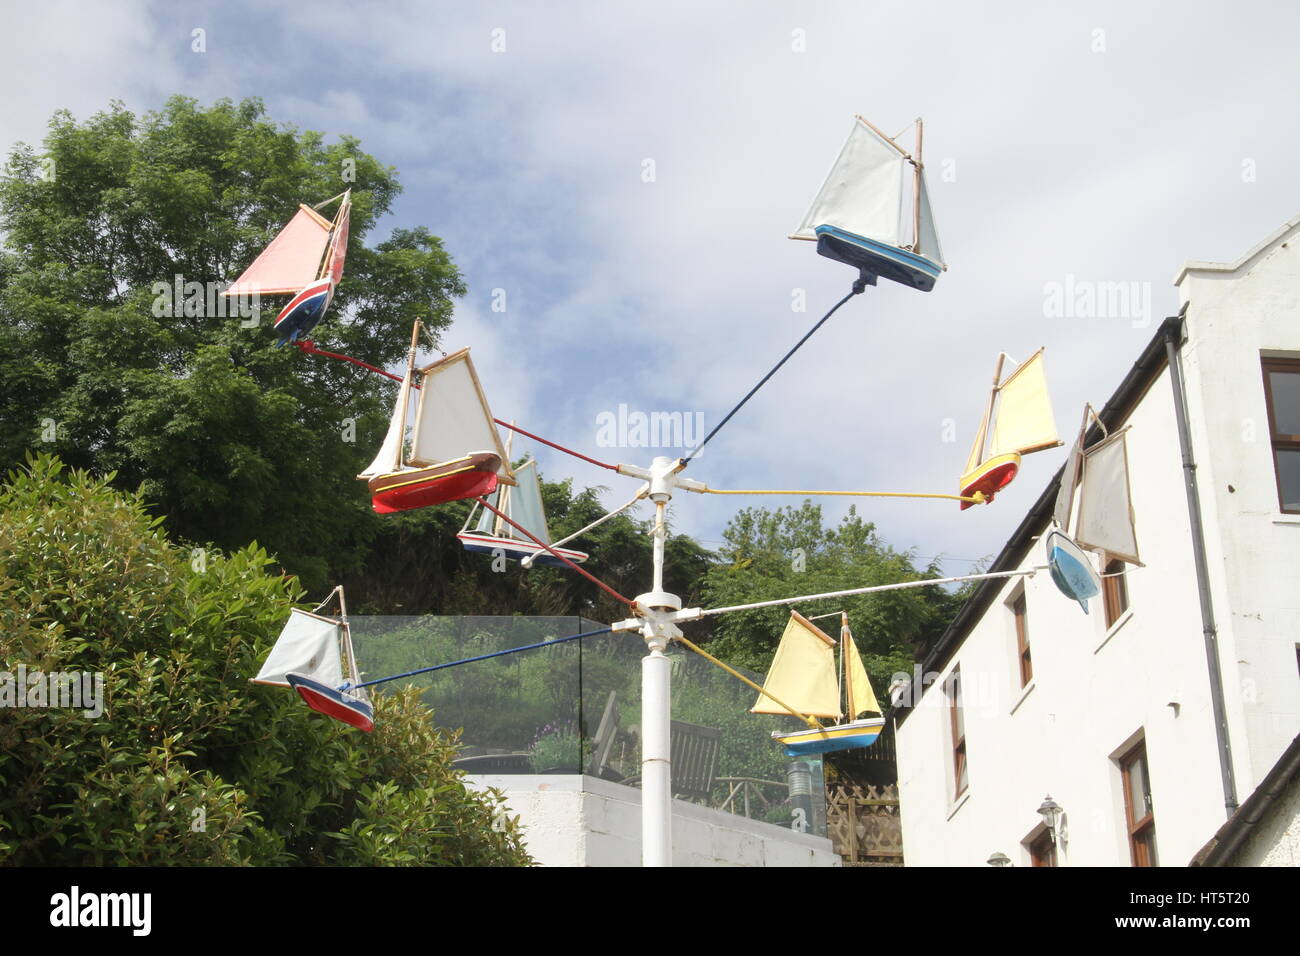 Unusual wind rotation device, Stonehaven, Aberdeenshire - Stock Image